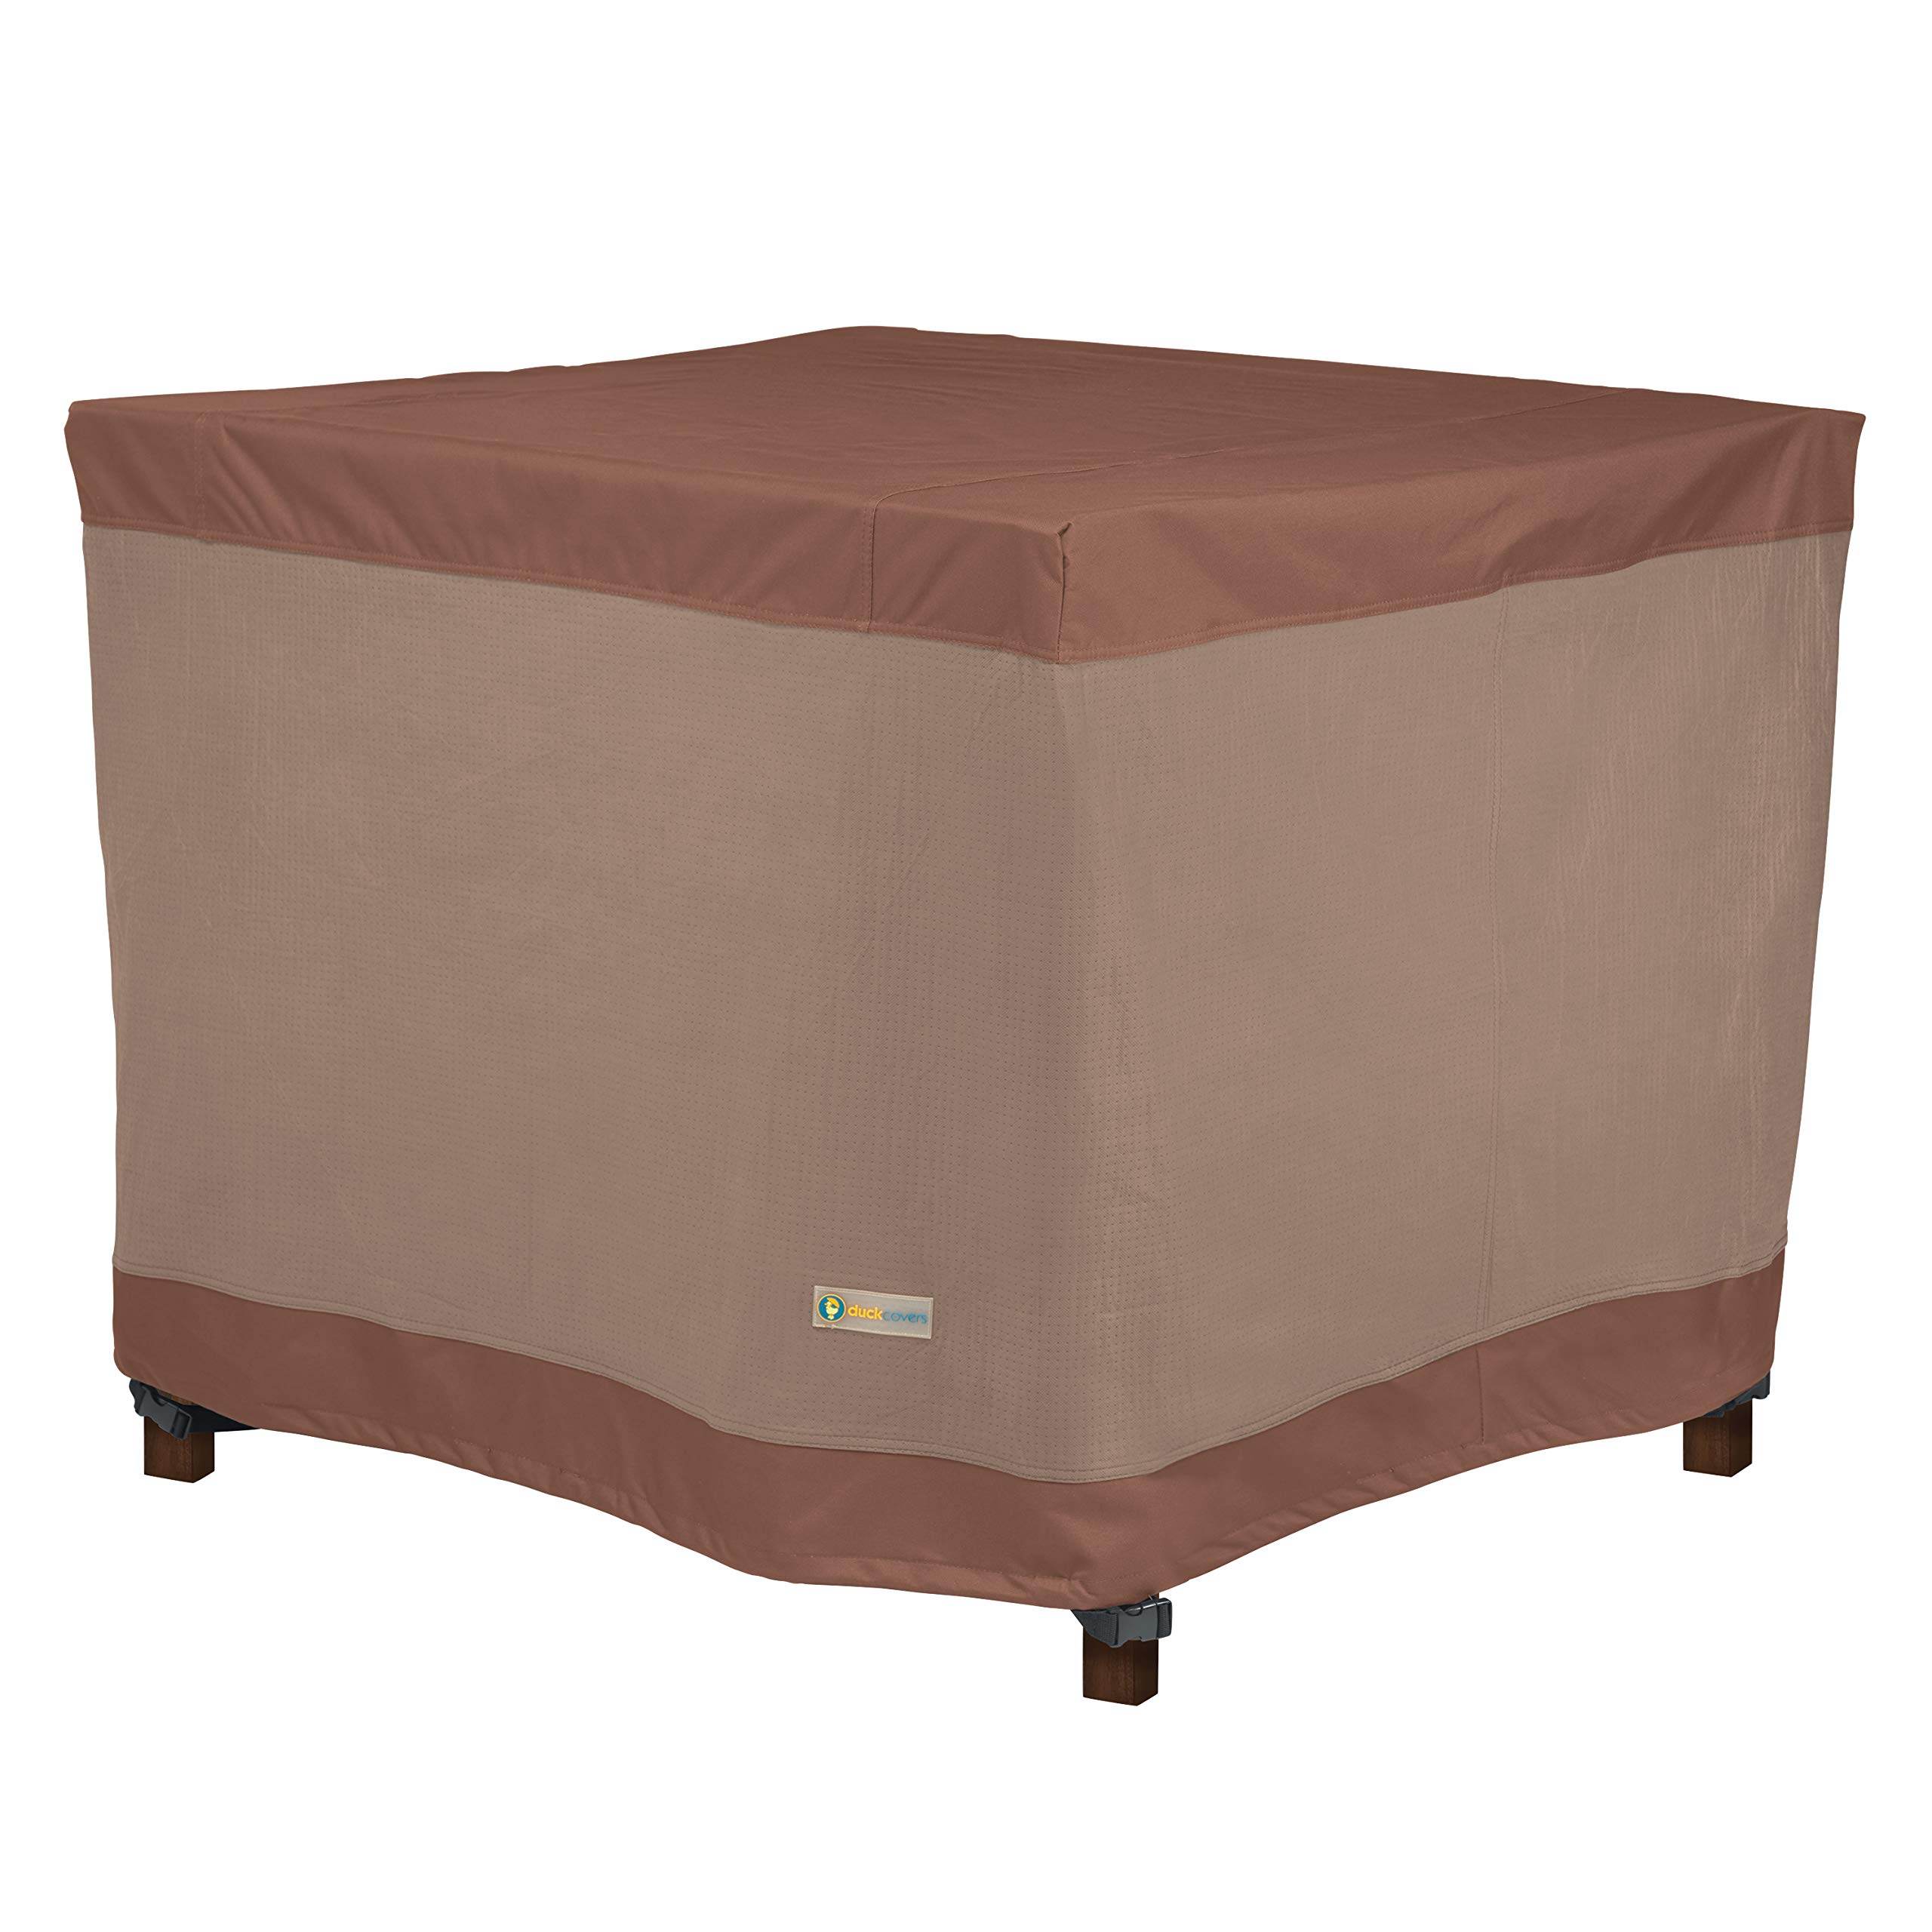 Duck Covers Ultimate Square Table Cover 40'' x 40'' by Duck Covers